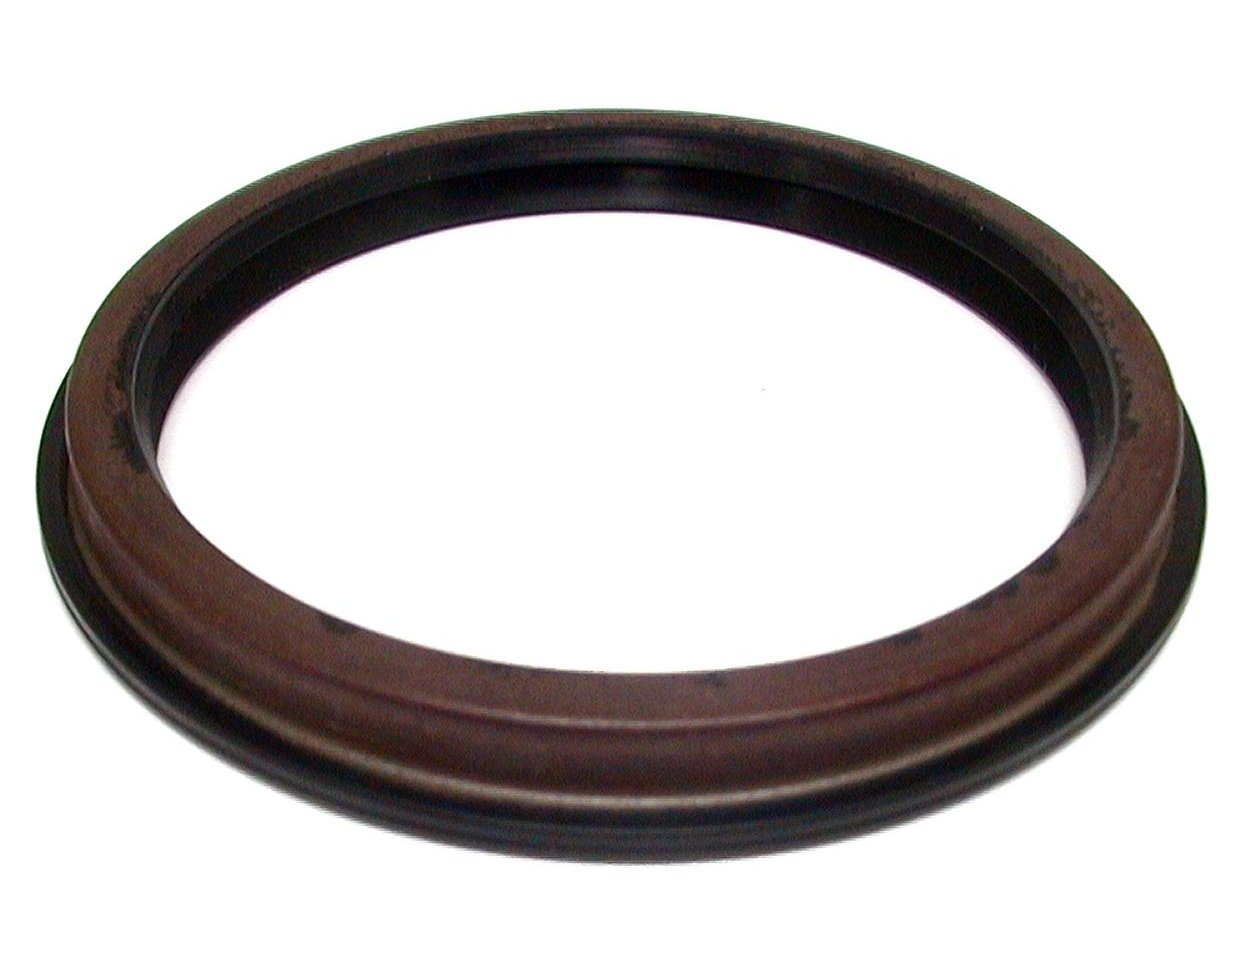 National Parts and Abrasives Replaces Front Wheel Seal K1500-4WD 8.25 R.G. (1988 Up)